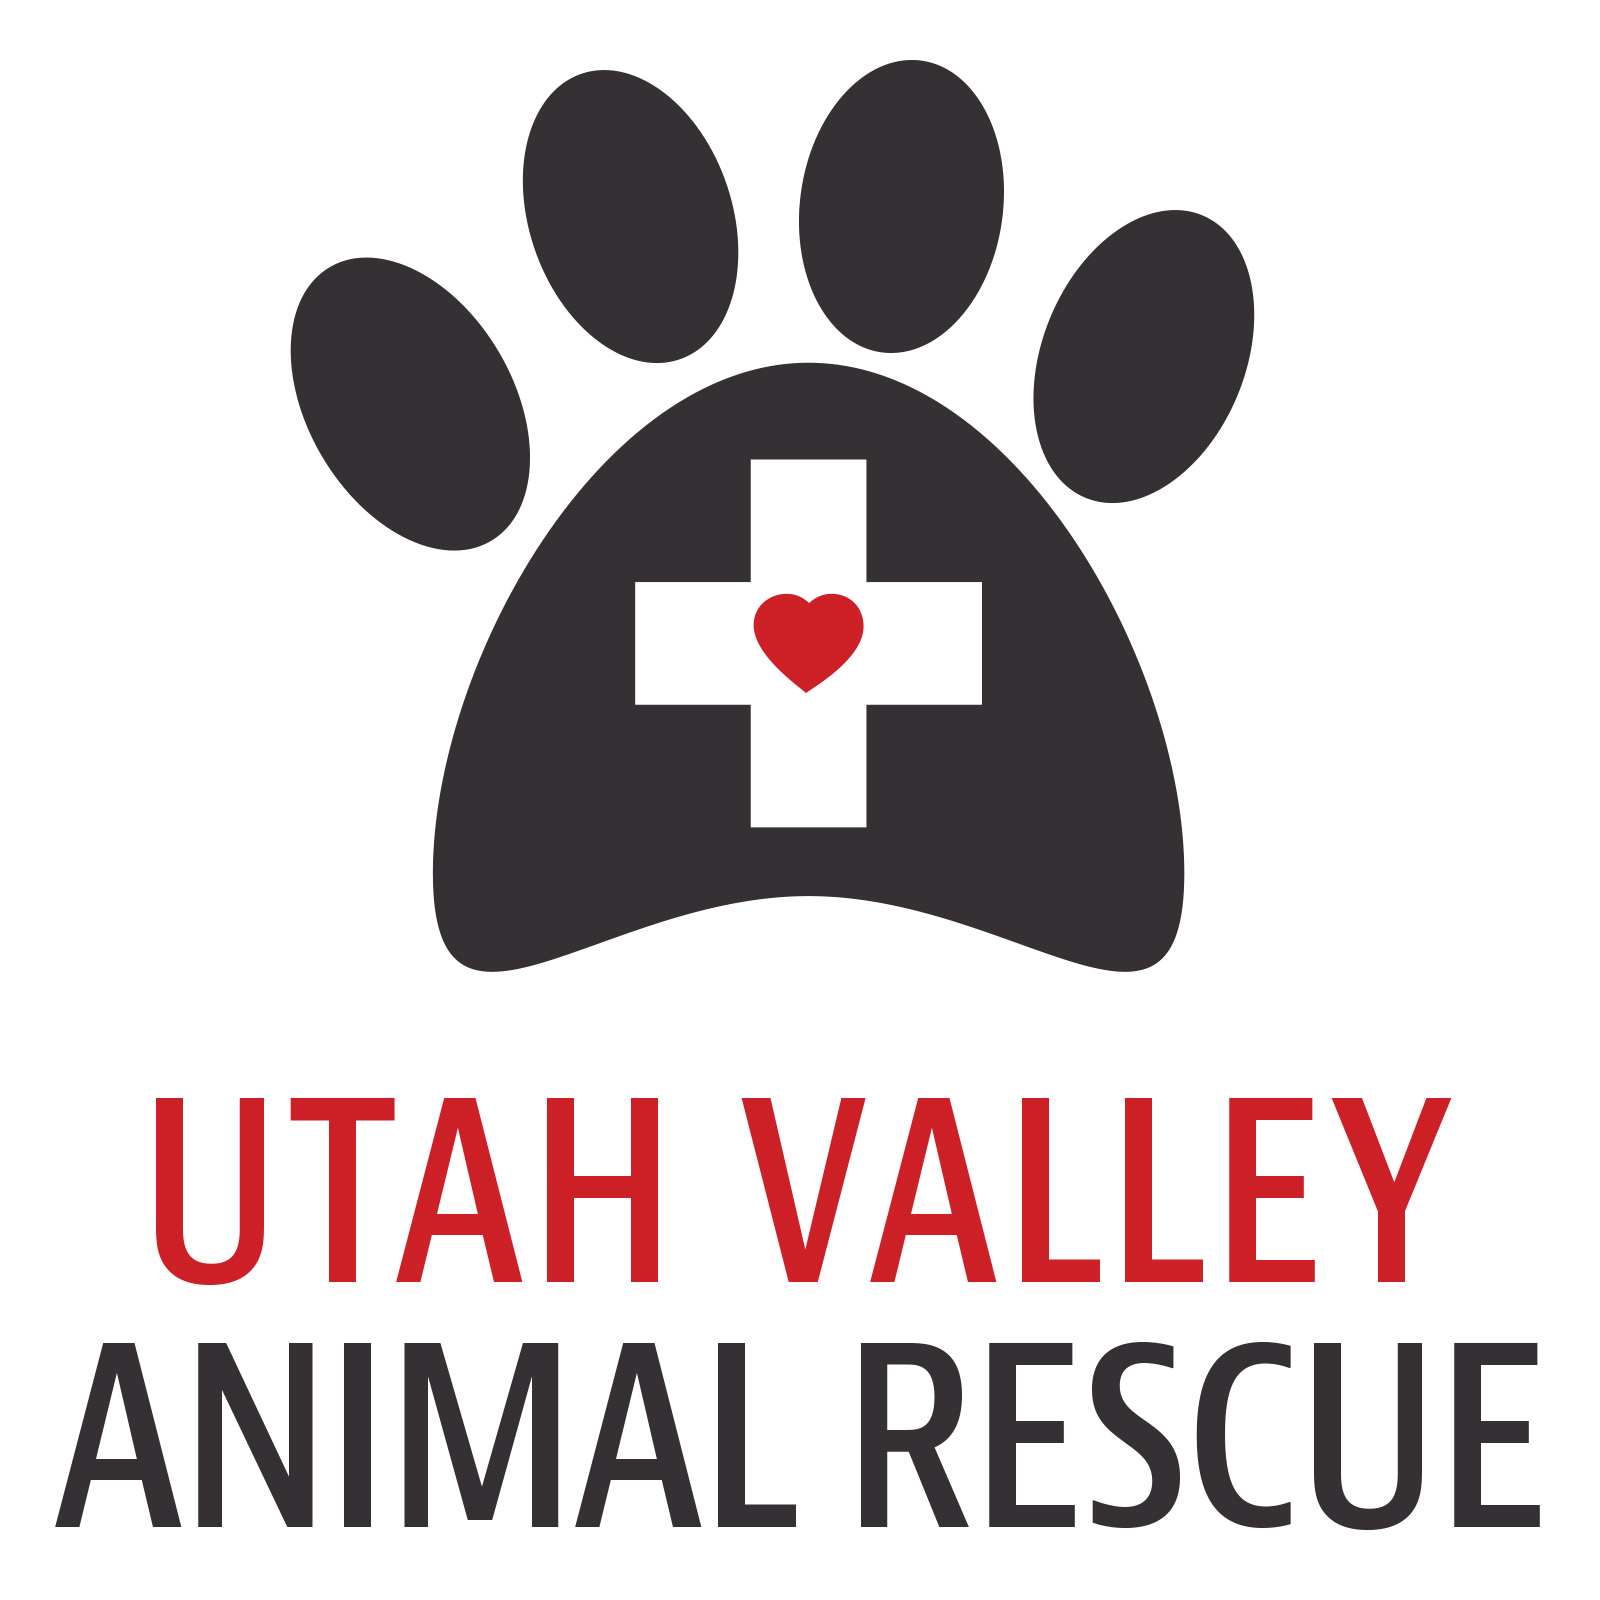 Utah Valley Animal Rescue